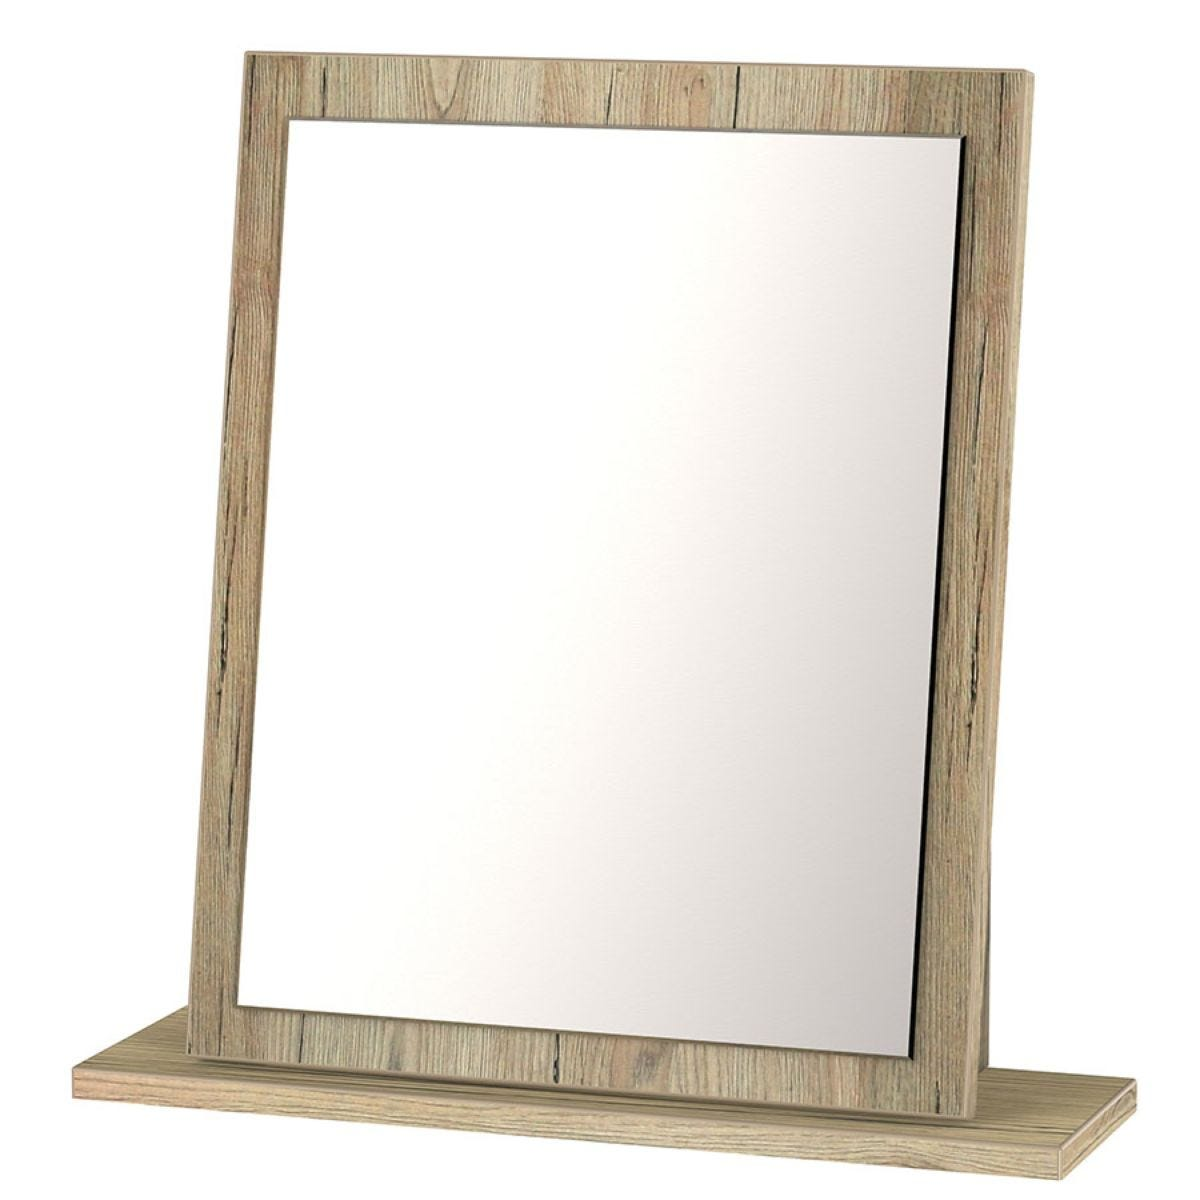 Wilcox Dressing Table Mirror - Oak Effect